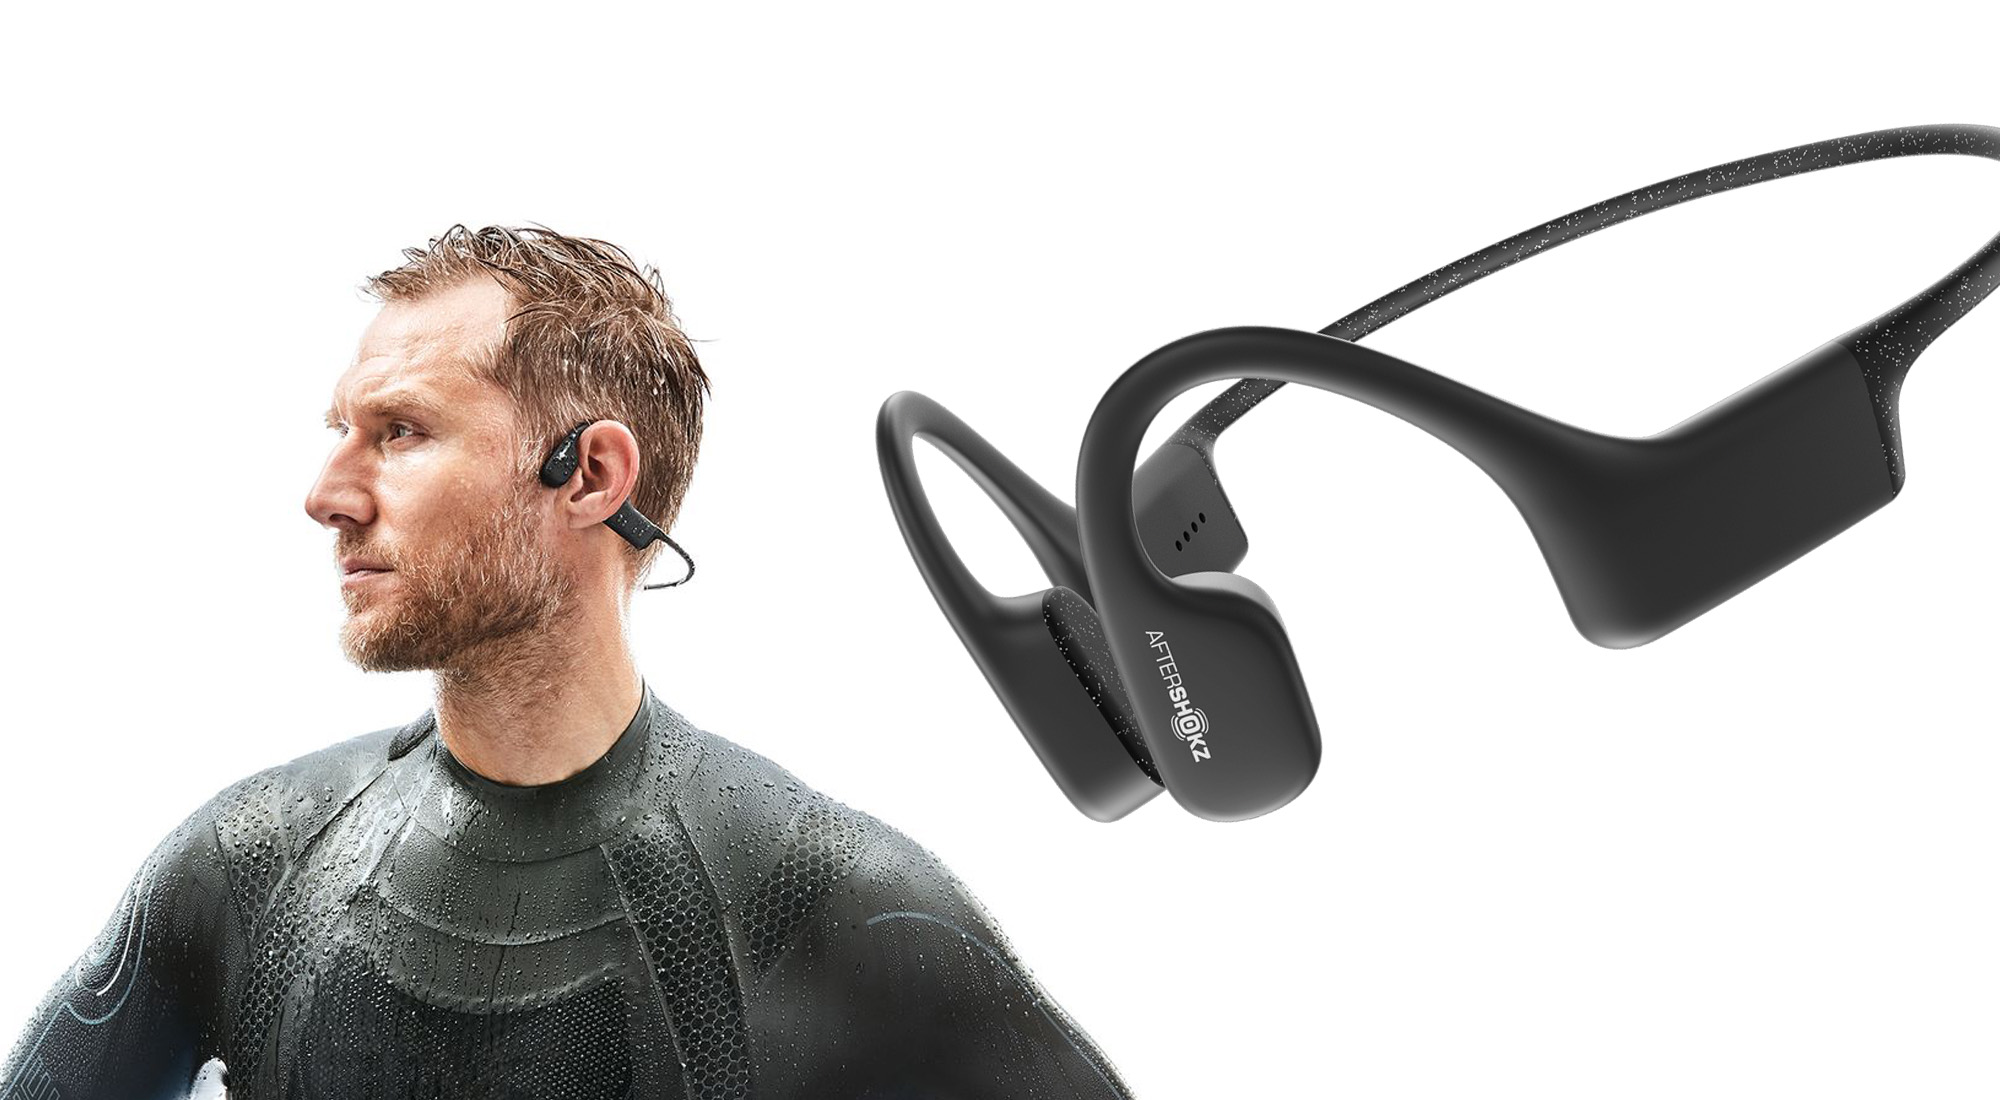 ces consumer tech showcase wearable tech design partners watersports headphones bone conducting